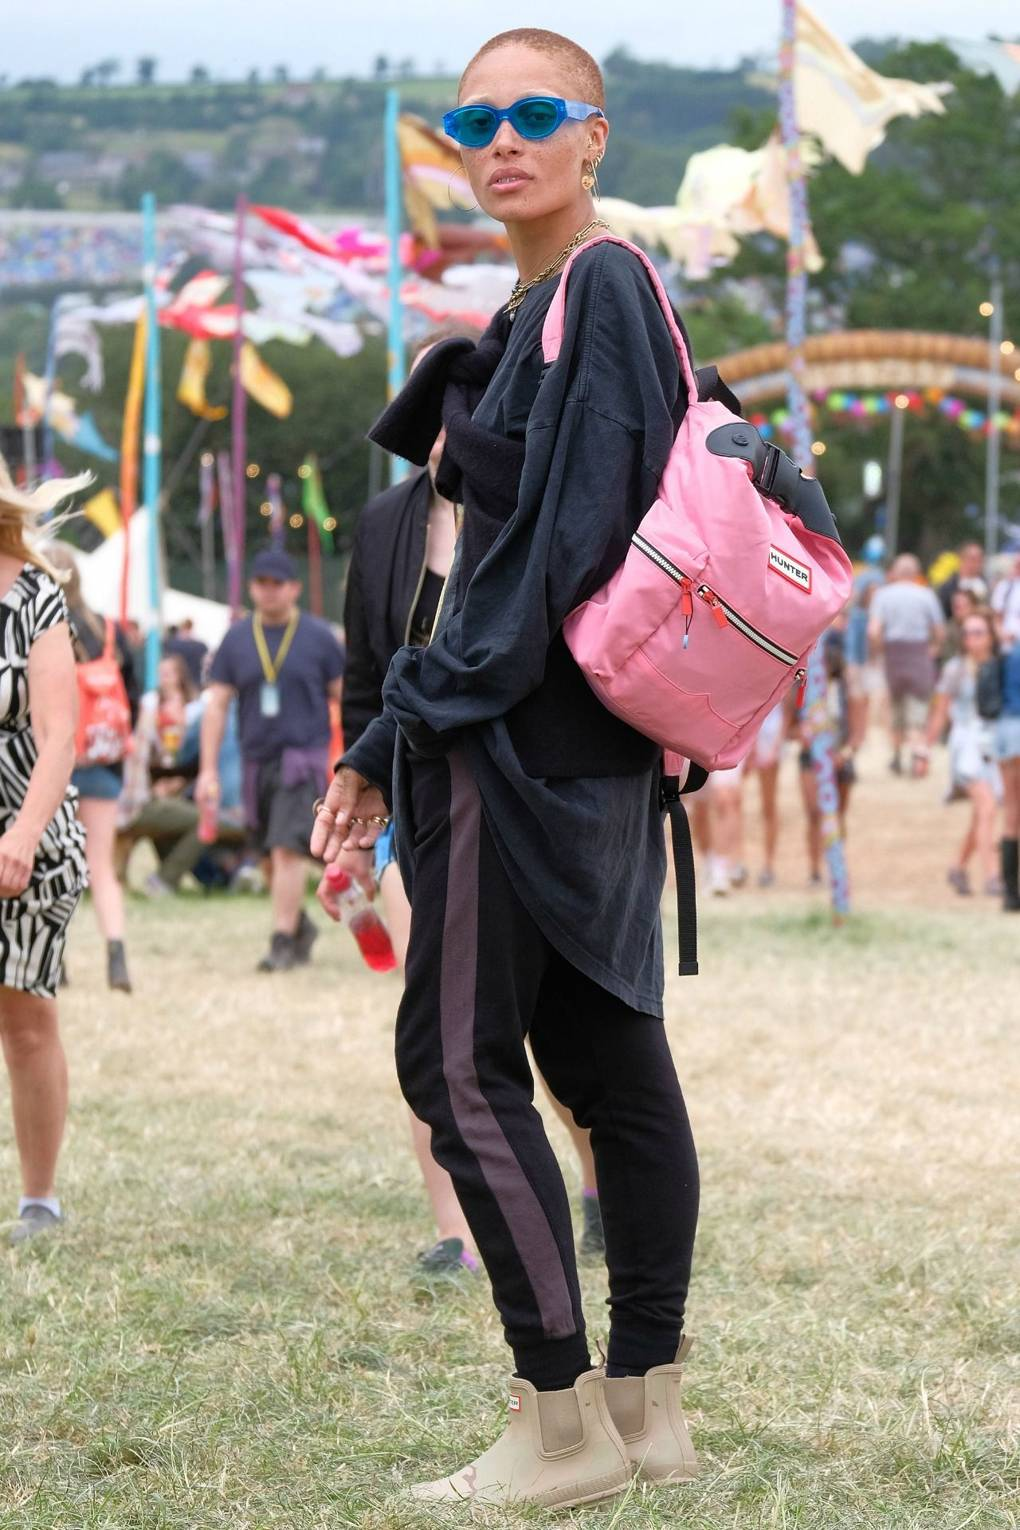 ad307eebf11 The Best Looks From Glastonbury Over The Years